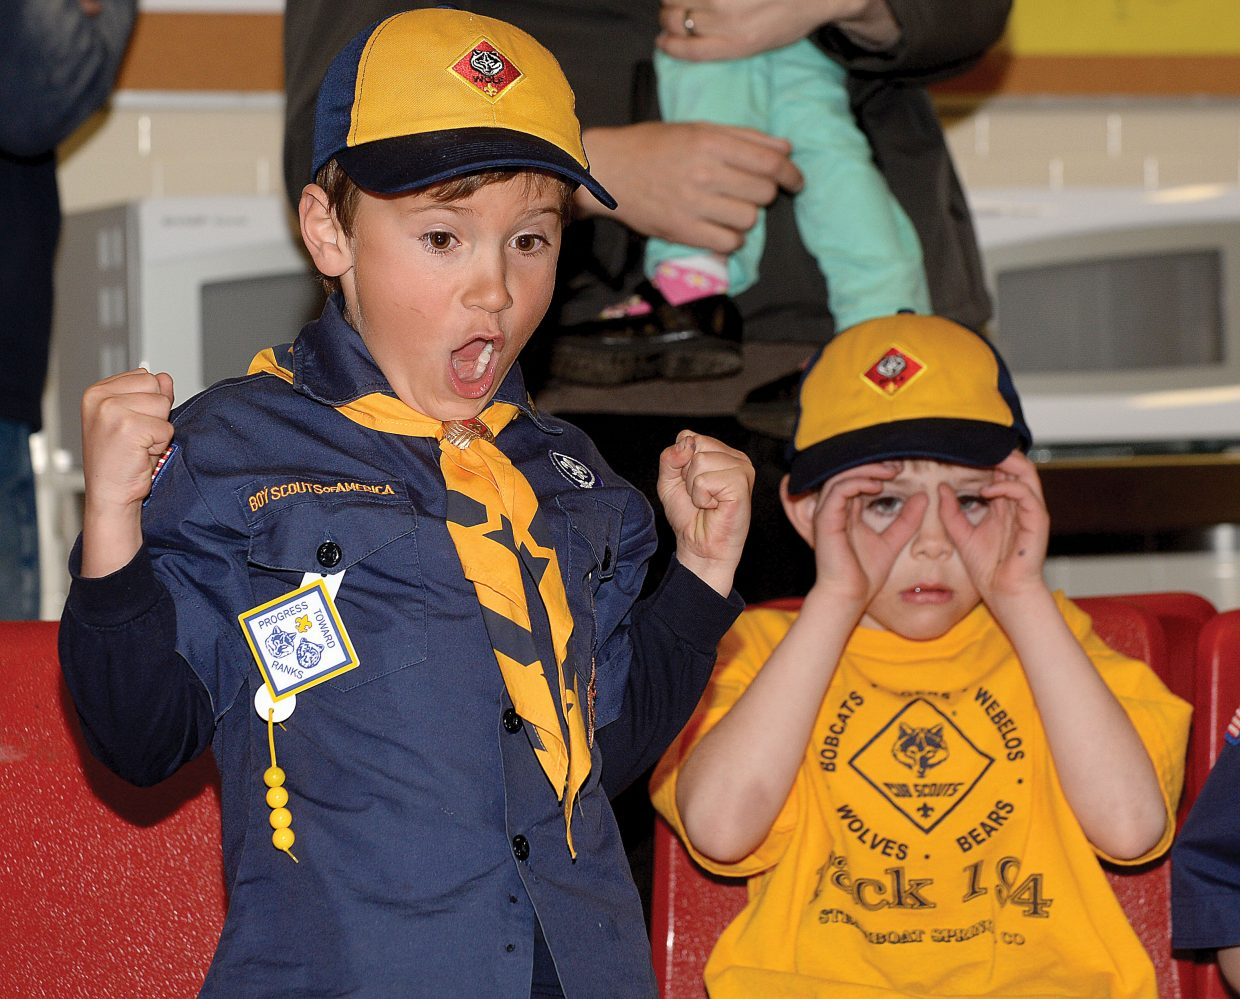 Cub Scout Kyan Strong cheers and his pal Ben Hearn keeps an eye on the finishes in a tight Pinewood Derby race Wednesday evening at the Steamboat Springs Middle School. Steamboat Cub Scout Troop 194 gathers every year to host the Pinewood Derby races for local scouts.